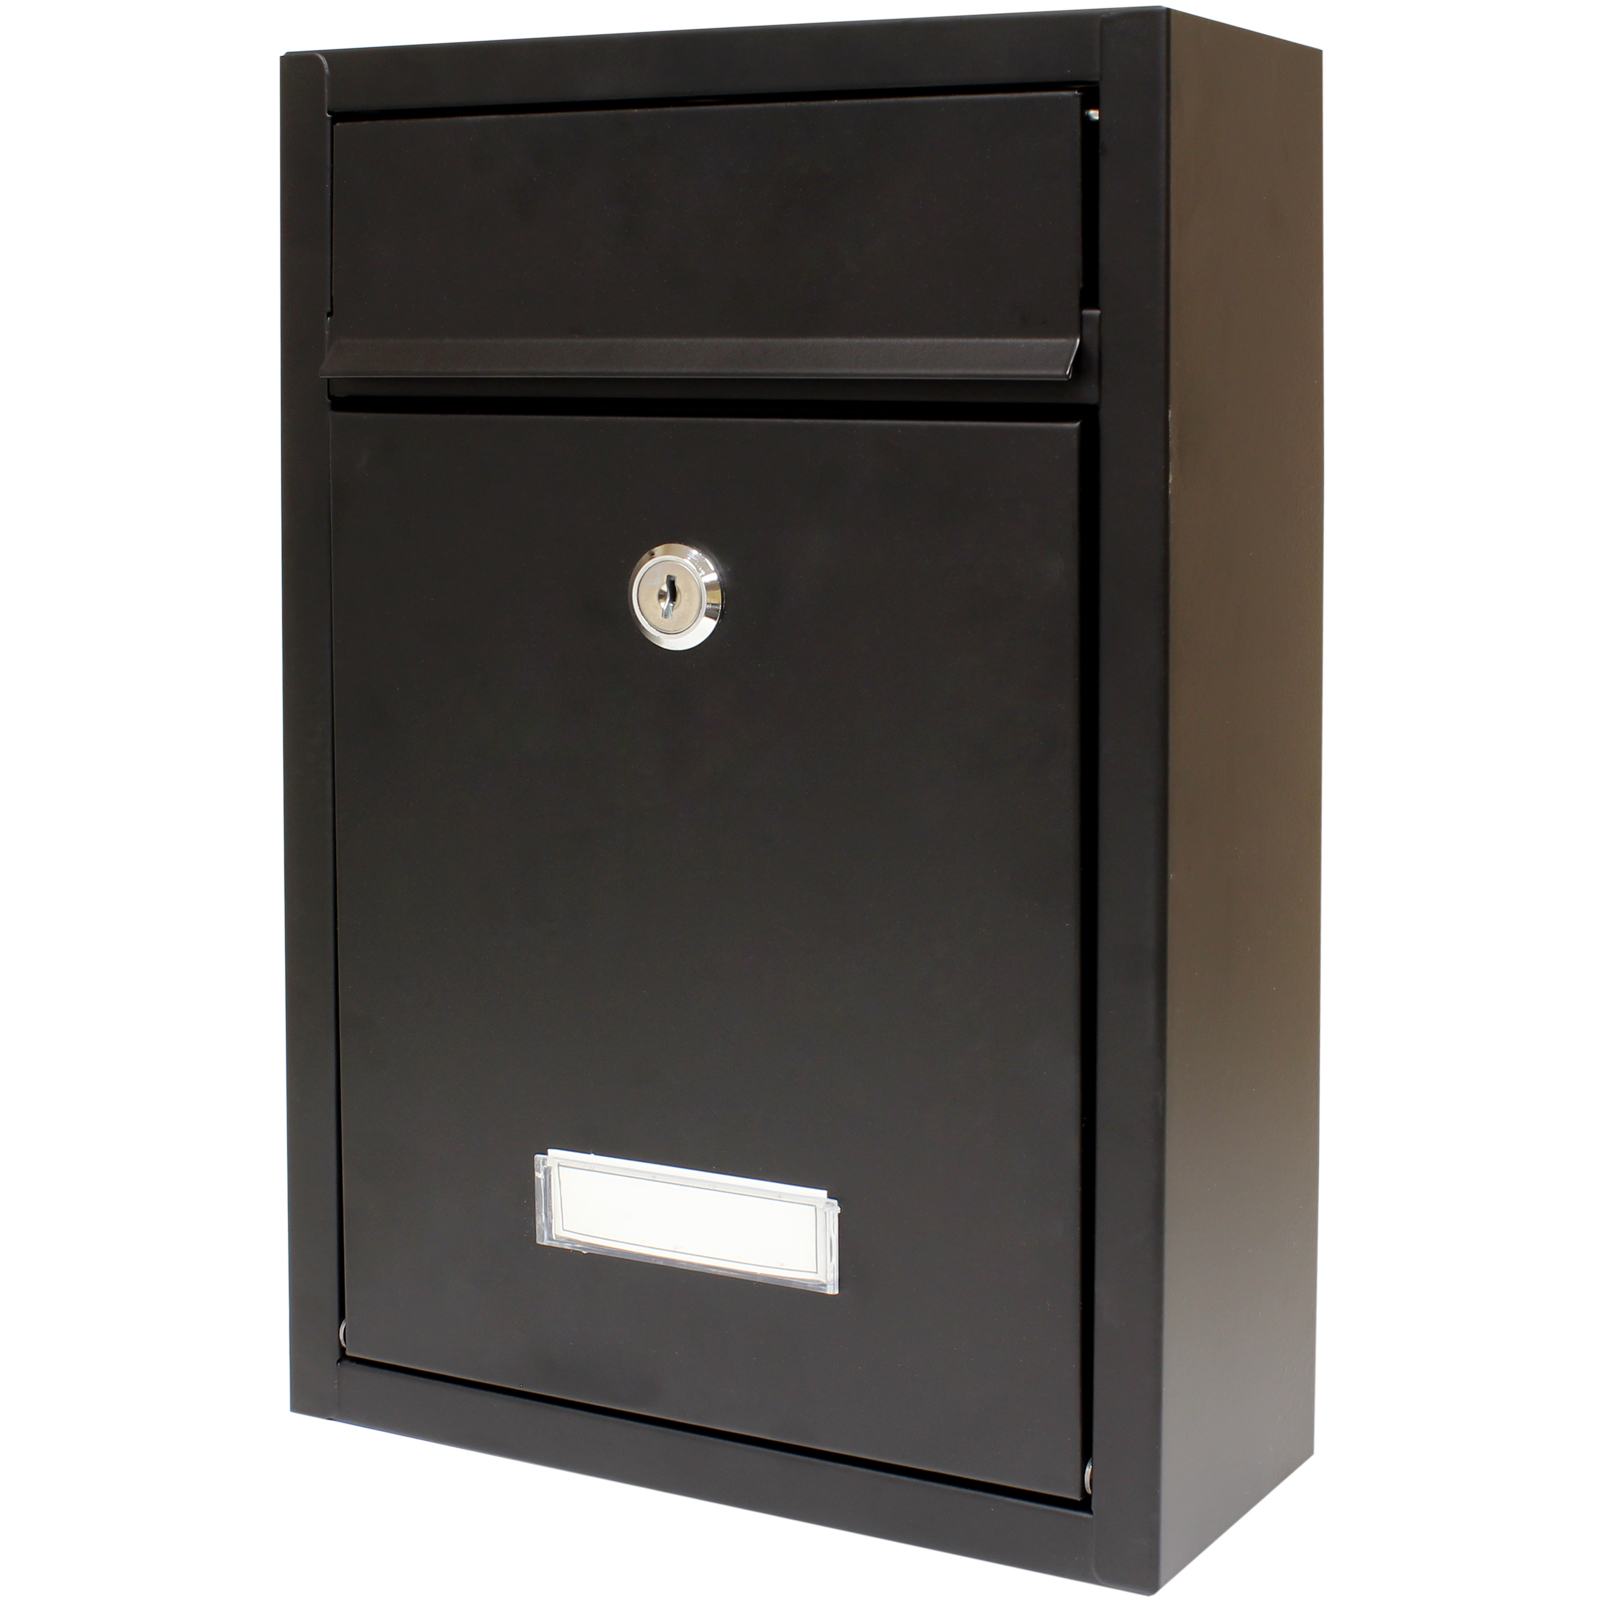 hardcastle lockable black wall mounted letter mail box With wall mounted letter box